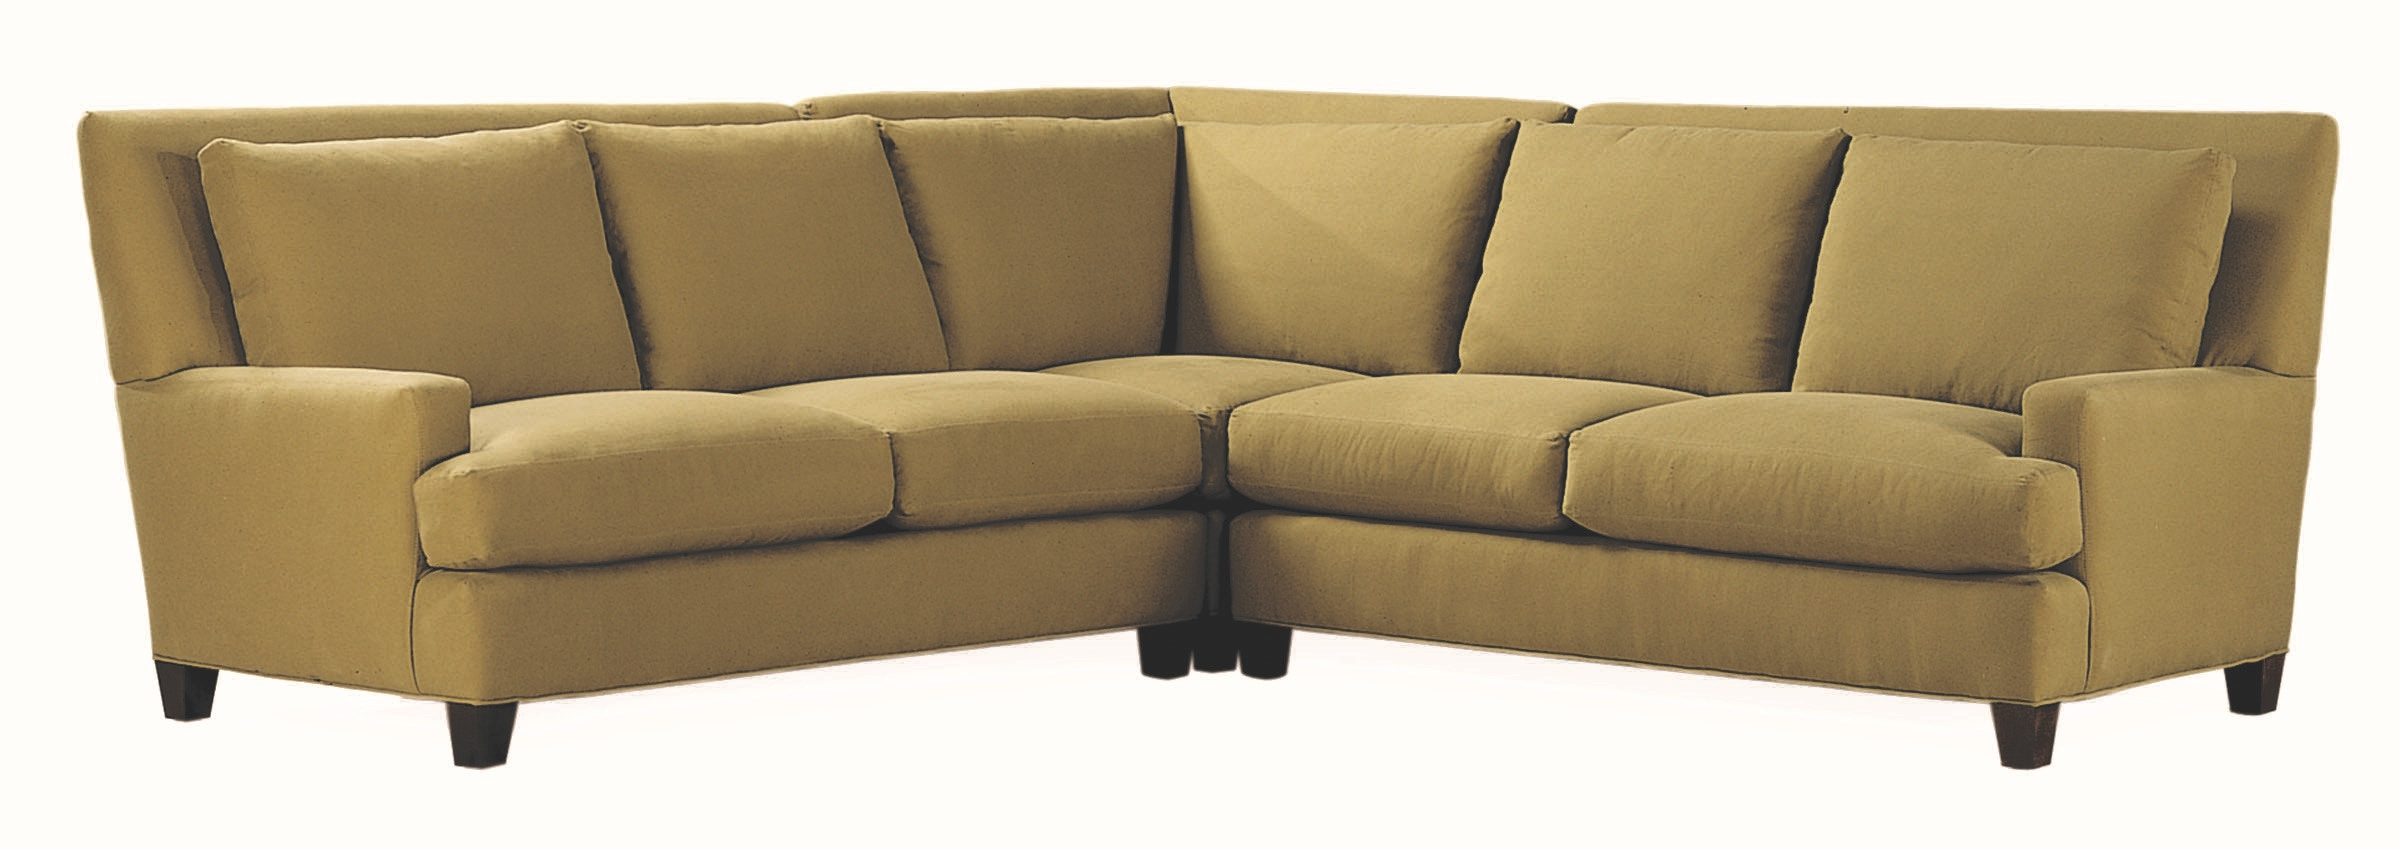 bernhardt upholstery brae sofa fabric repair living room sectionals - toms-price furniture chicago ...